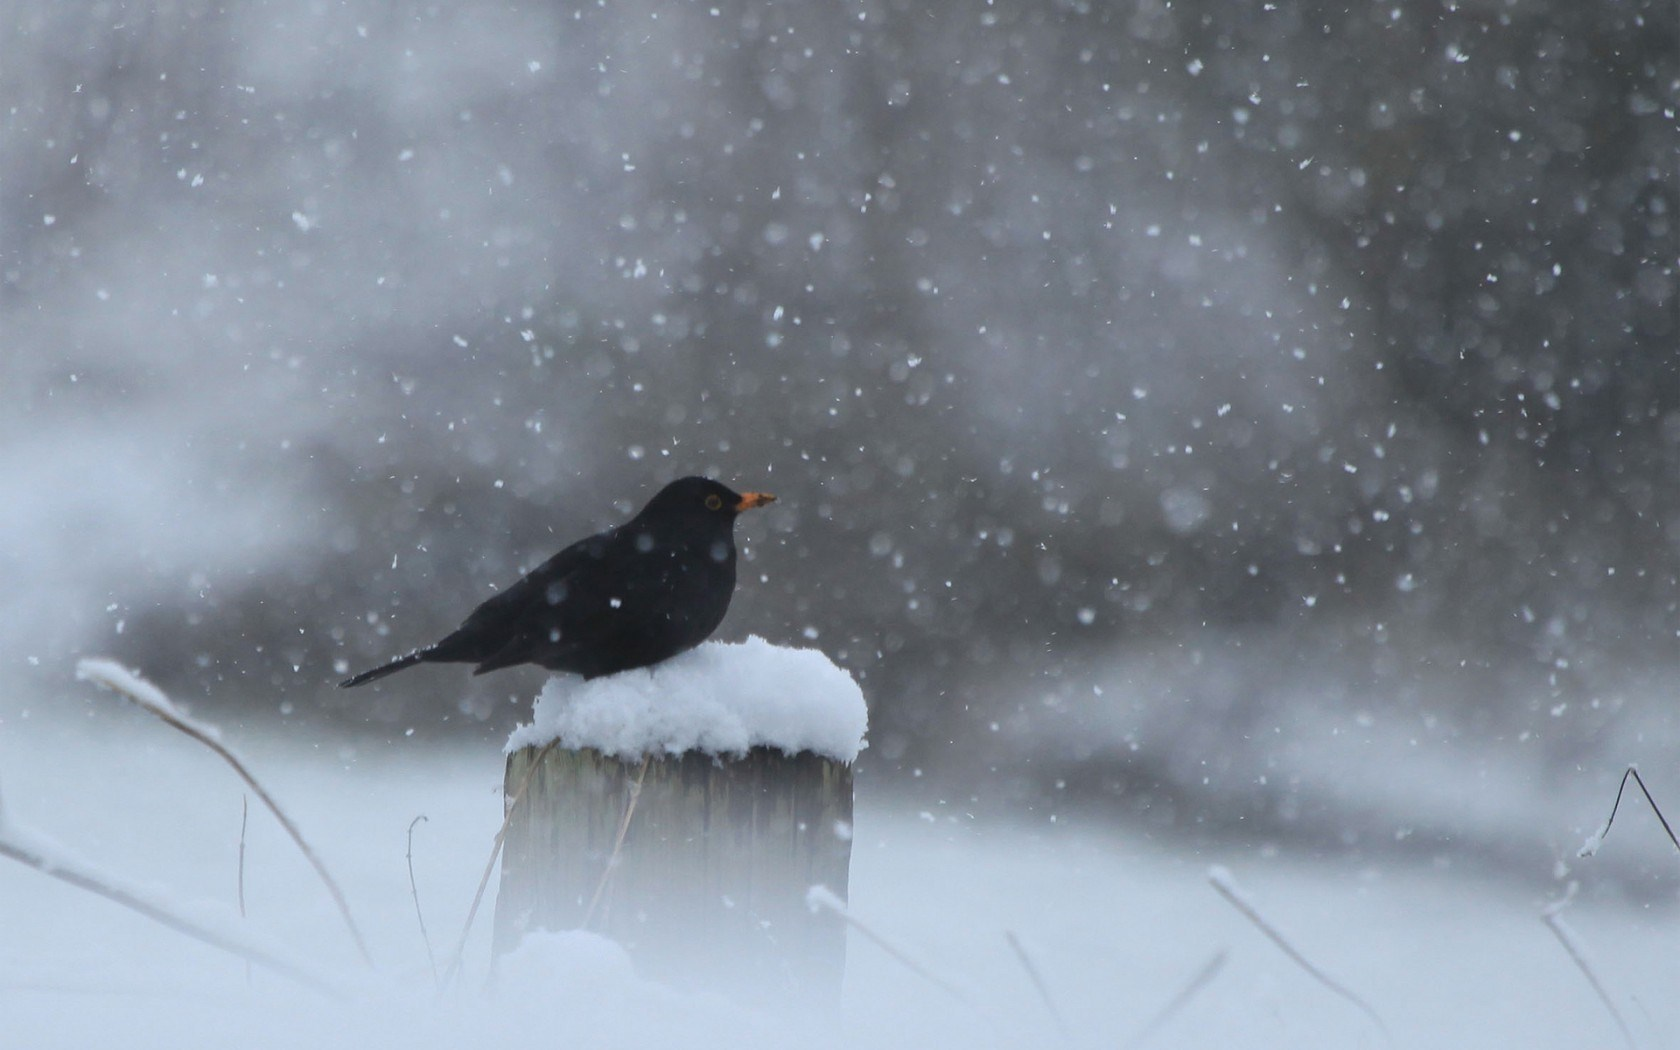 crow in snow wallpapers hd - photo #1